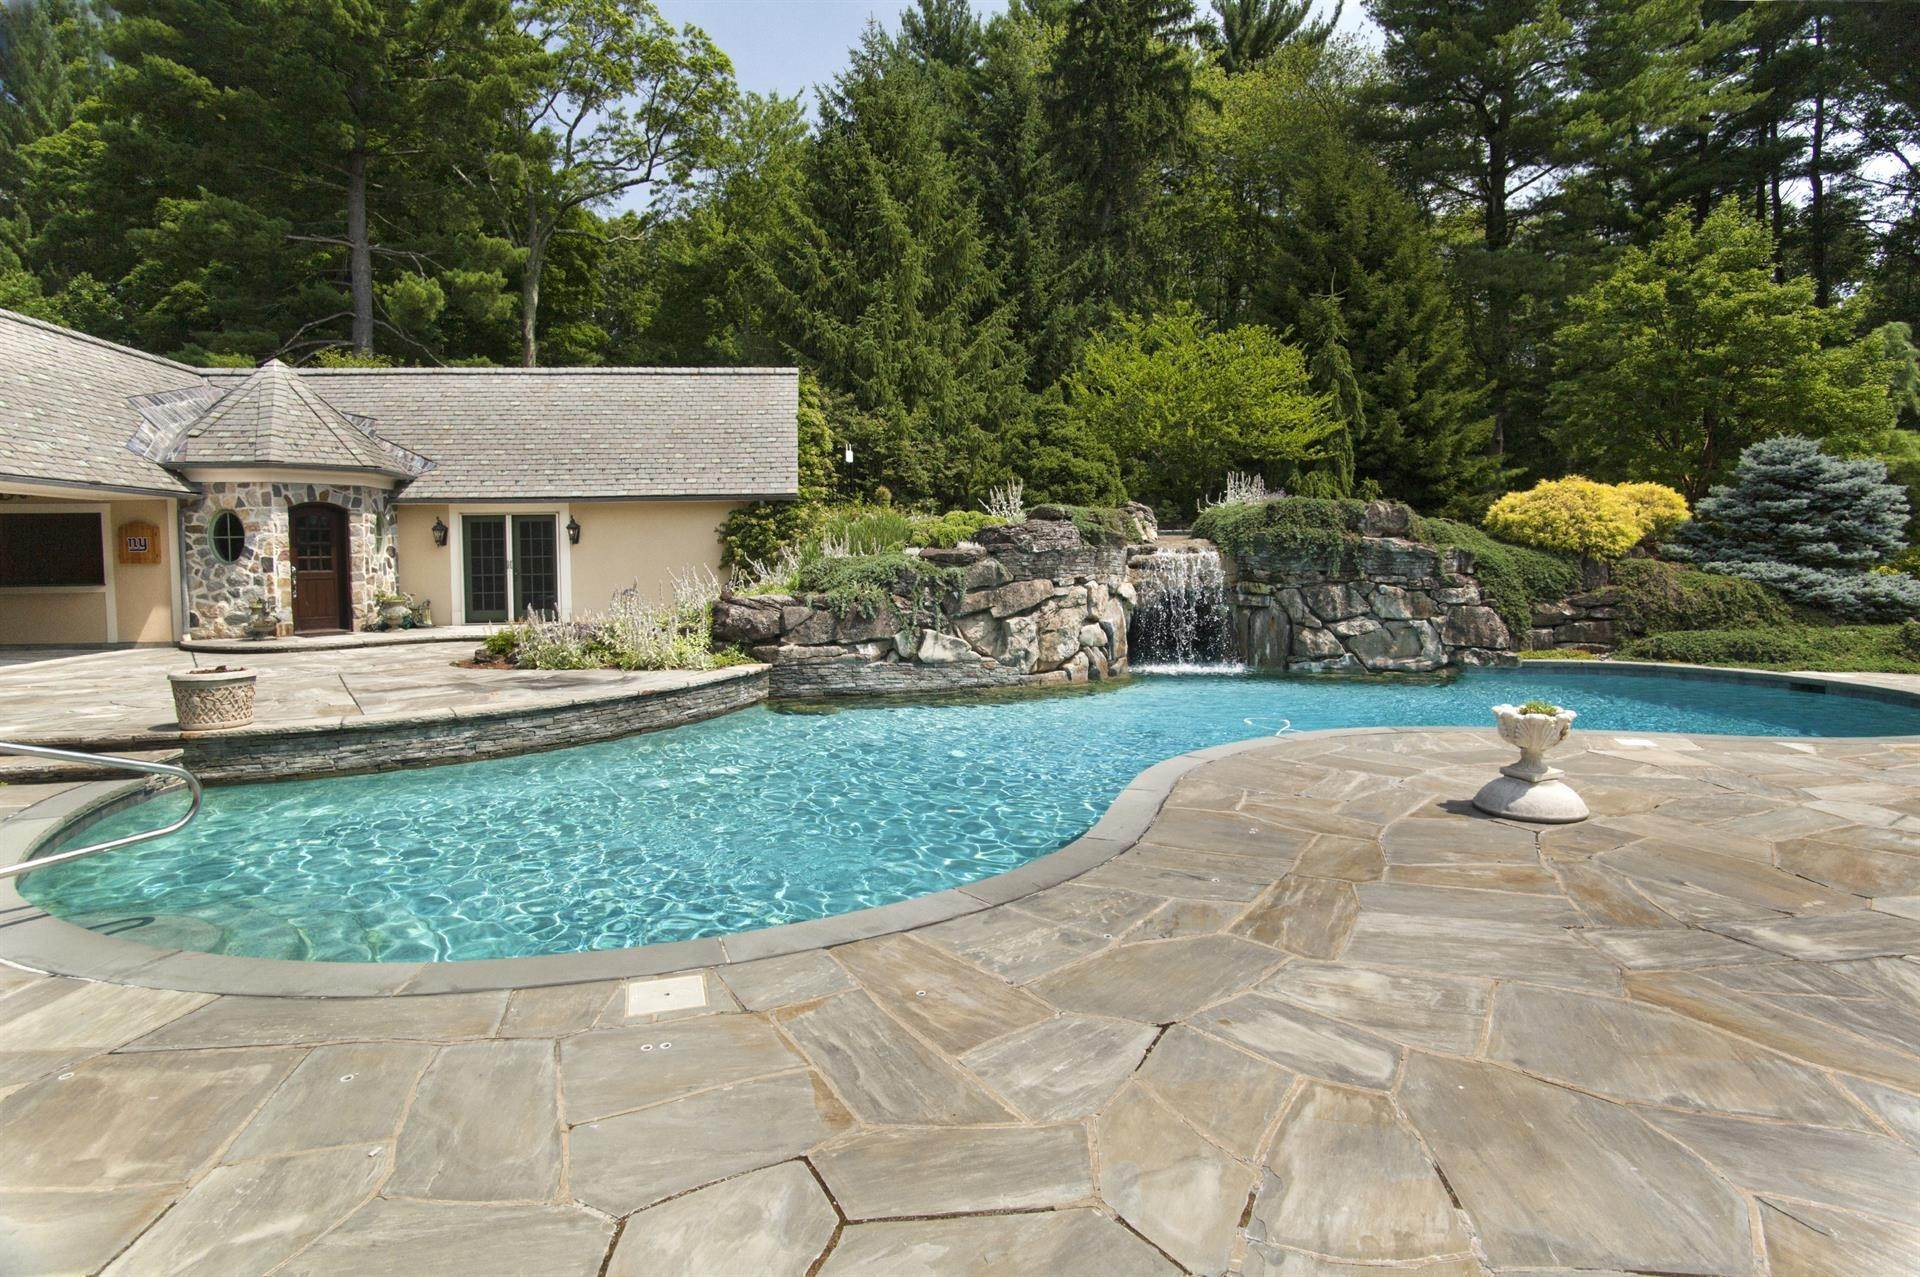 23. Single Family Home vì Bán tại Celebrity Stunner - 5+ Acre Family Compound Saddle River, New Jersey,07458 Hoa Kỳ